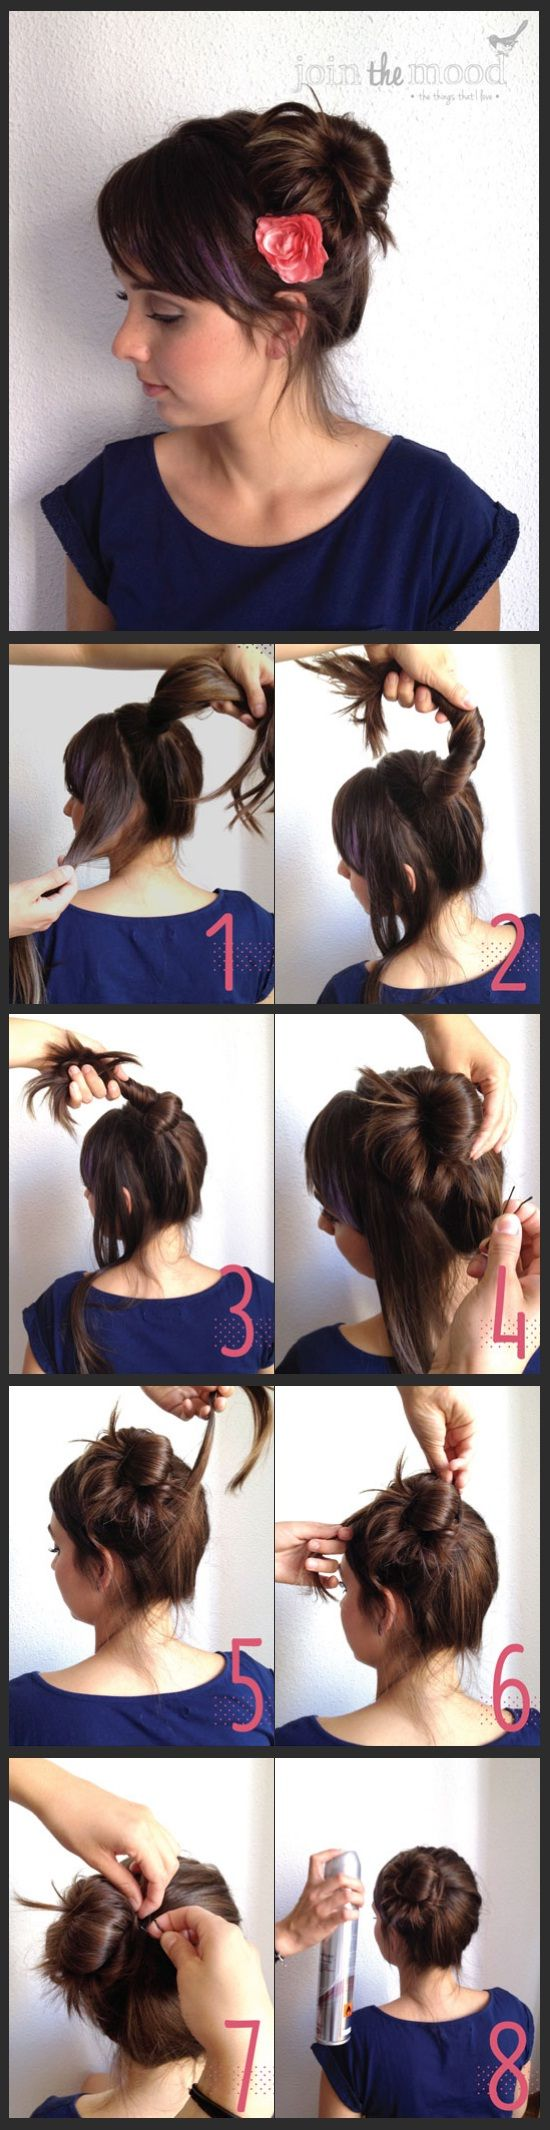 How To Do a Messy Side Bun | Beauty TutorialsLong Hair Style, Beauty Tutorials, Hair Tutorials, Long Hairstyles, Buns Hairstyles, Beautiful Tutorials, Messy Side Buns, Hair Makeup, Messy Buns